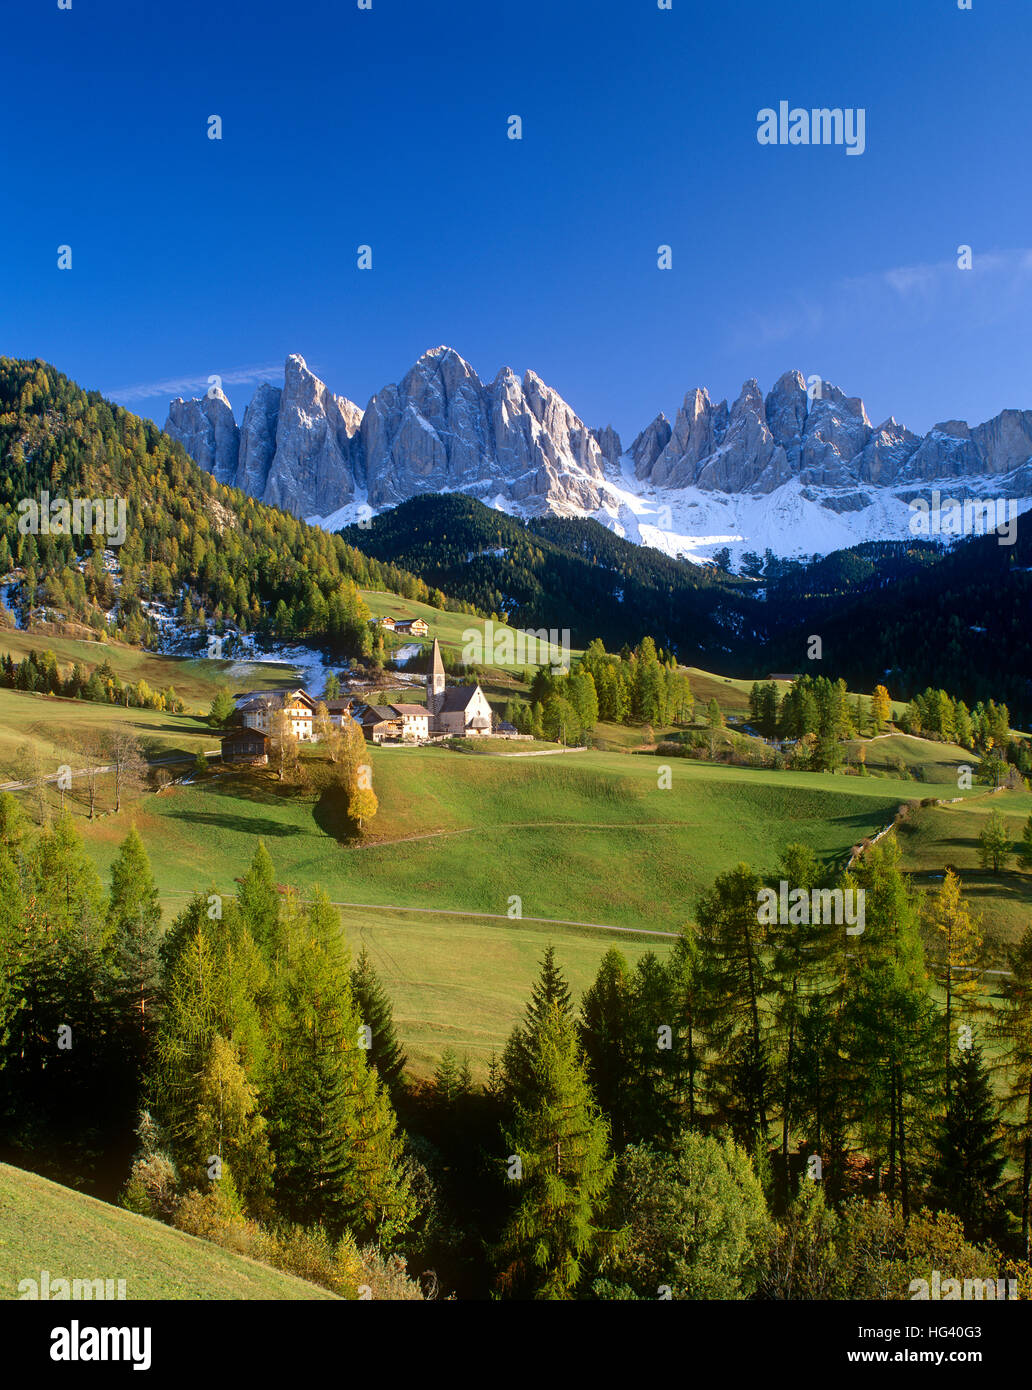 Valdi Funes and the Dolomiti (Geissler Gruppe) mountains, Alto Adige, Trentino, Italy - Stock Image